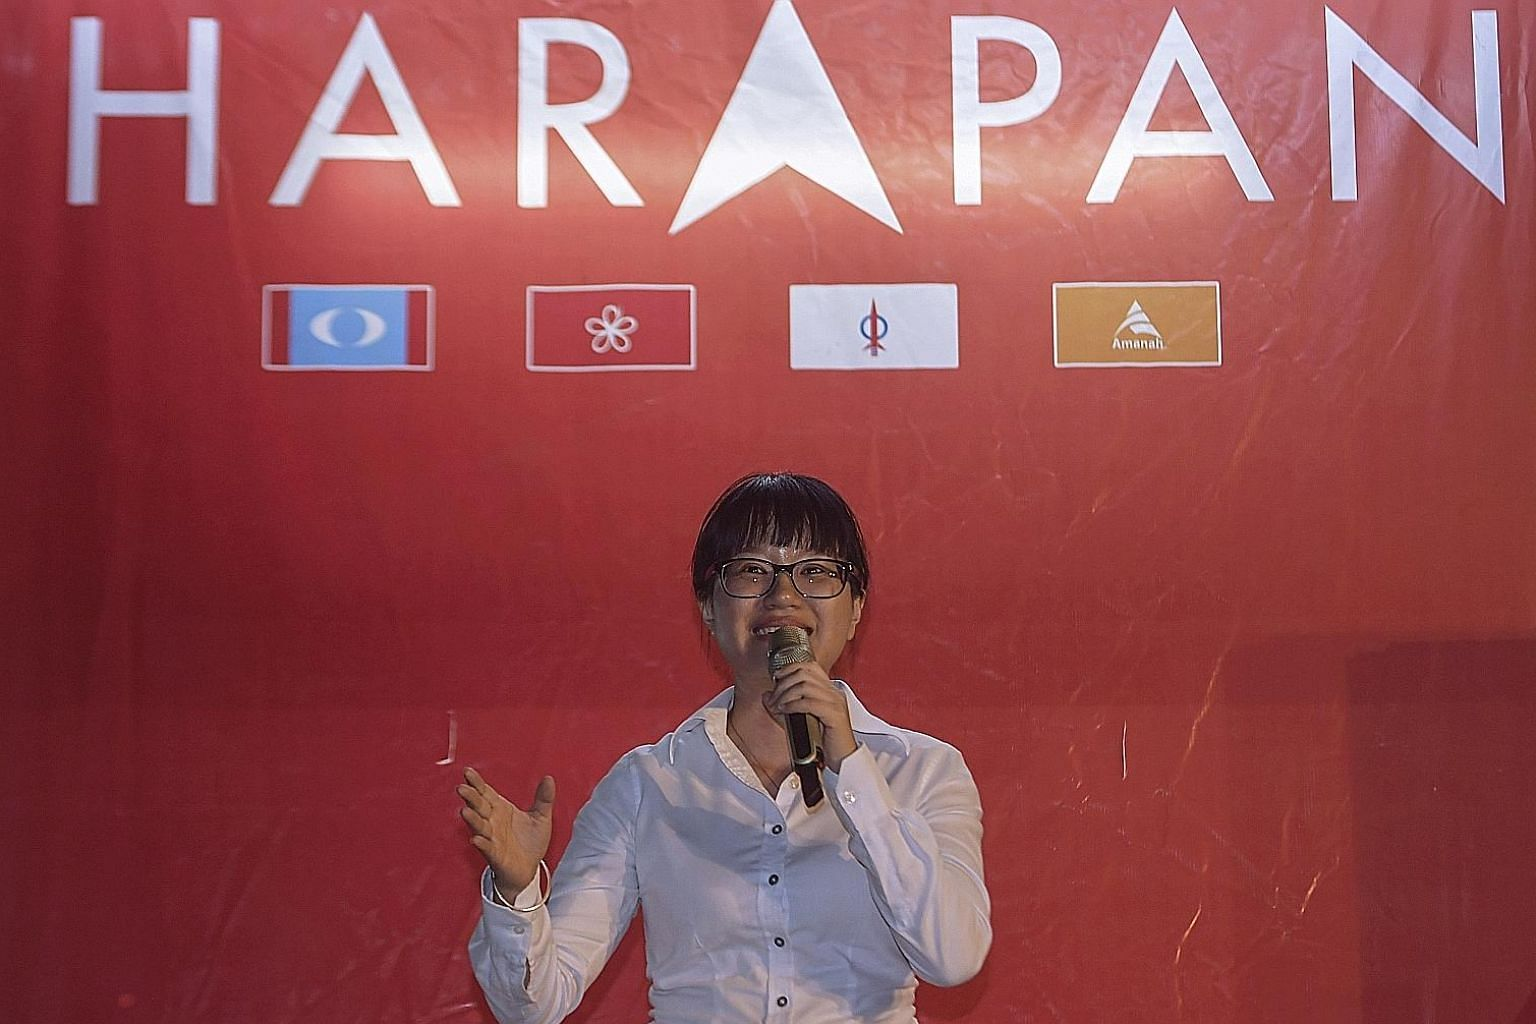 """Pakatan Harapan candidate Wong Siew Ki in front of a version of the PH logo, which has an arrowhead replacing the letter """"A"""" in the middle of the word """"Harapan"""". Malaysian Chinese Association candidate Tan Chee Teong (third from left) and other party"""